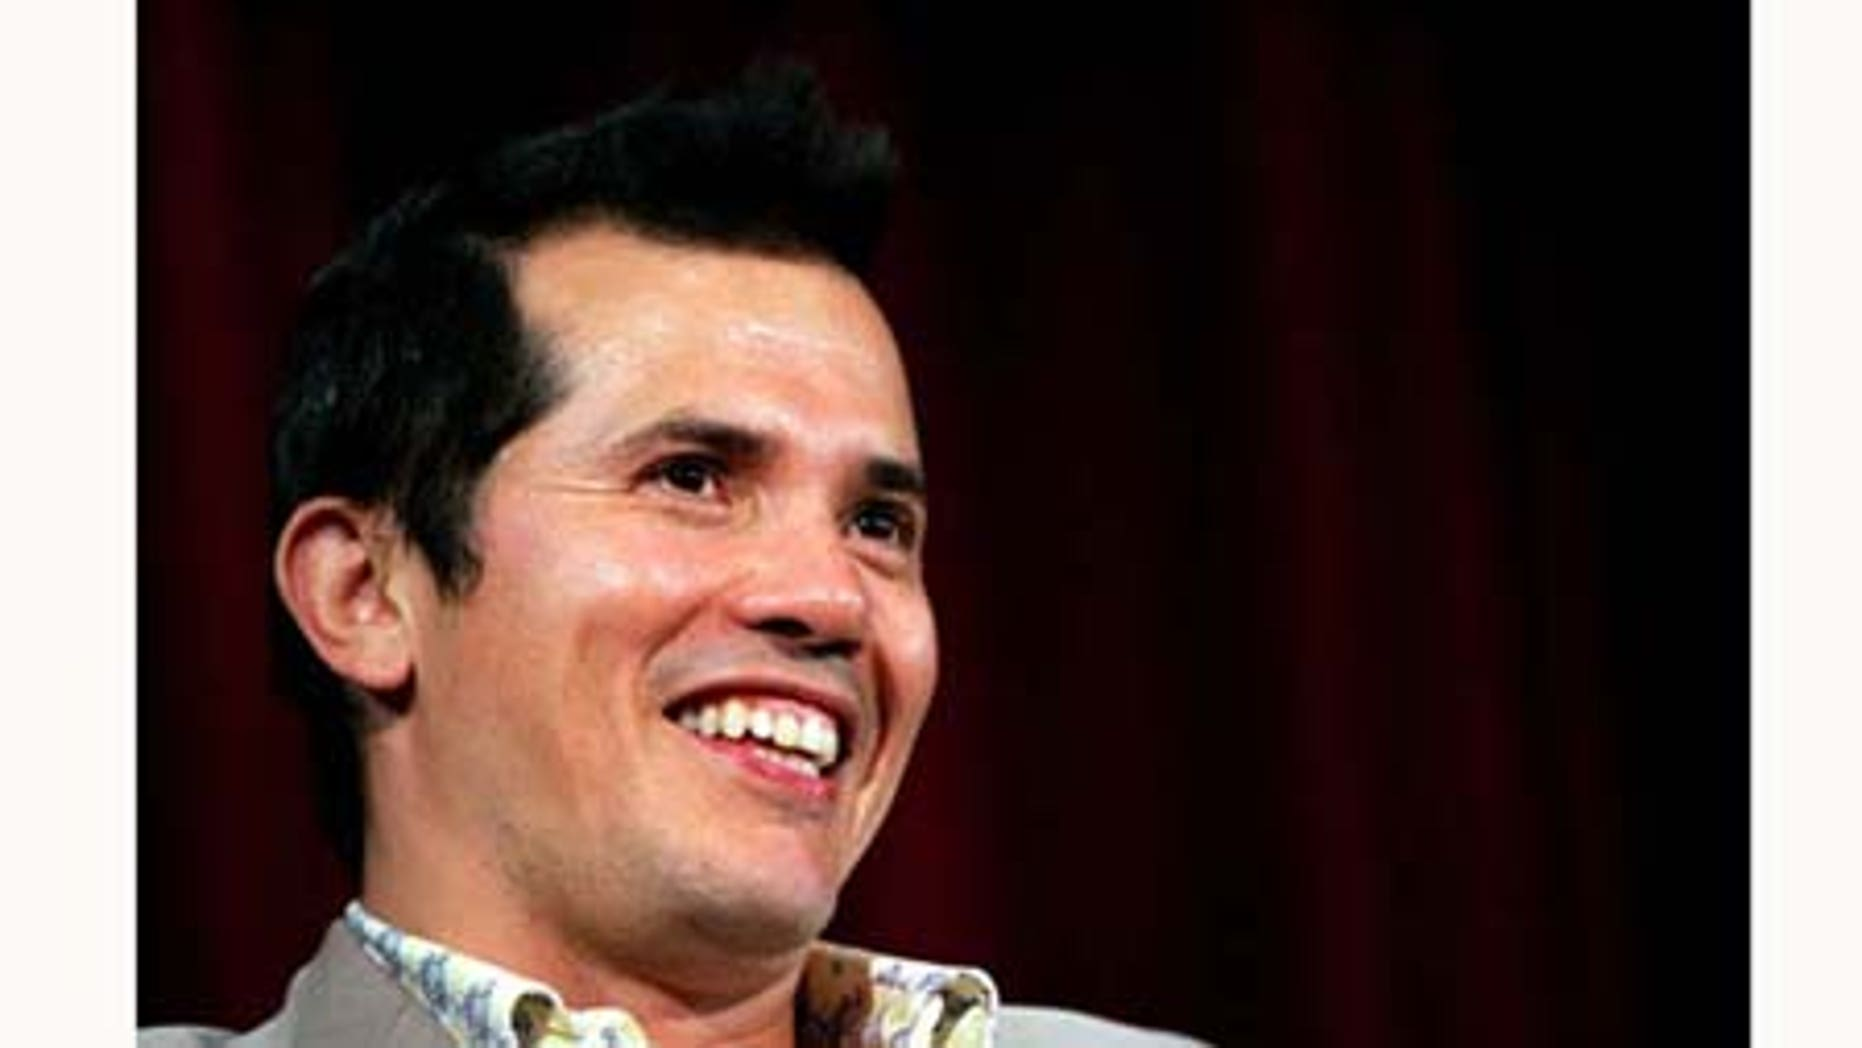 June 28, 2005: Actor John Leguizamo takes part in a panel discussion for the Variety screening of 'Cronicas' at the Directors Guild of America Theater in New York City.